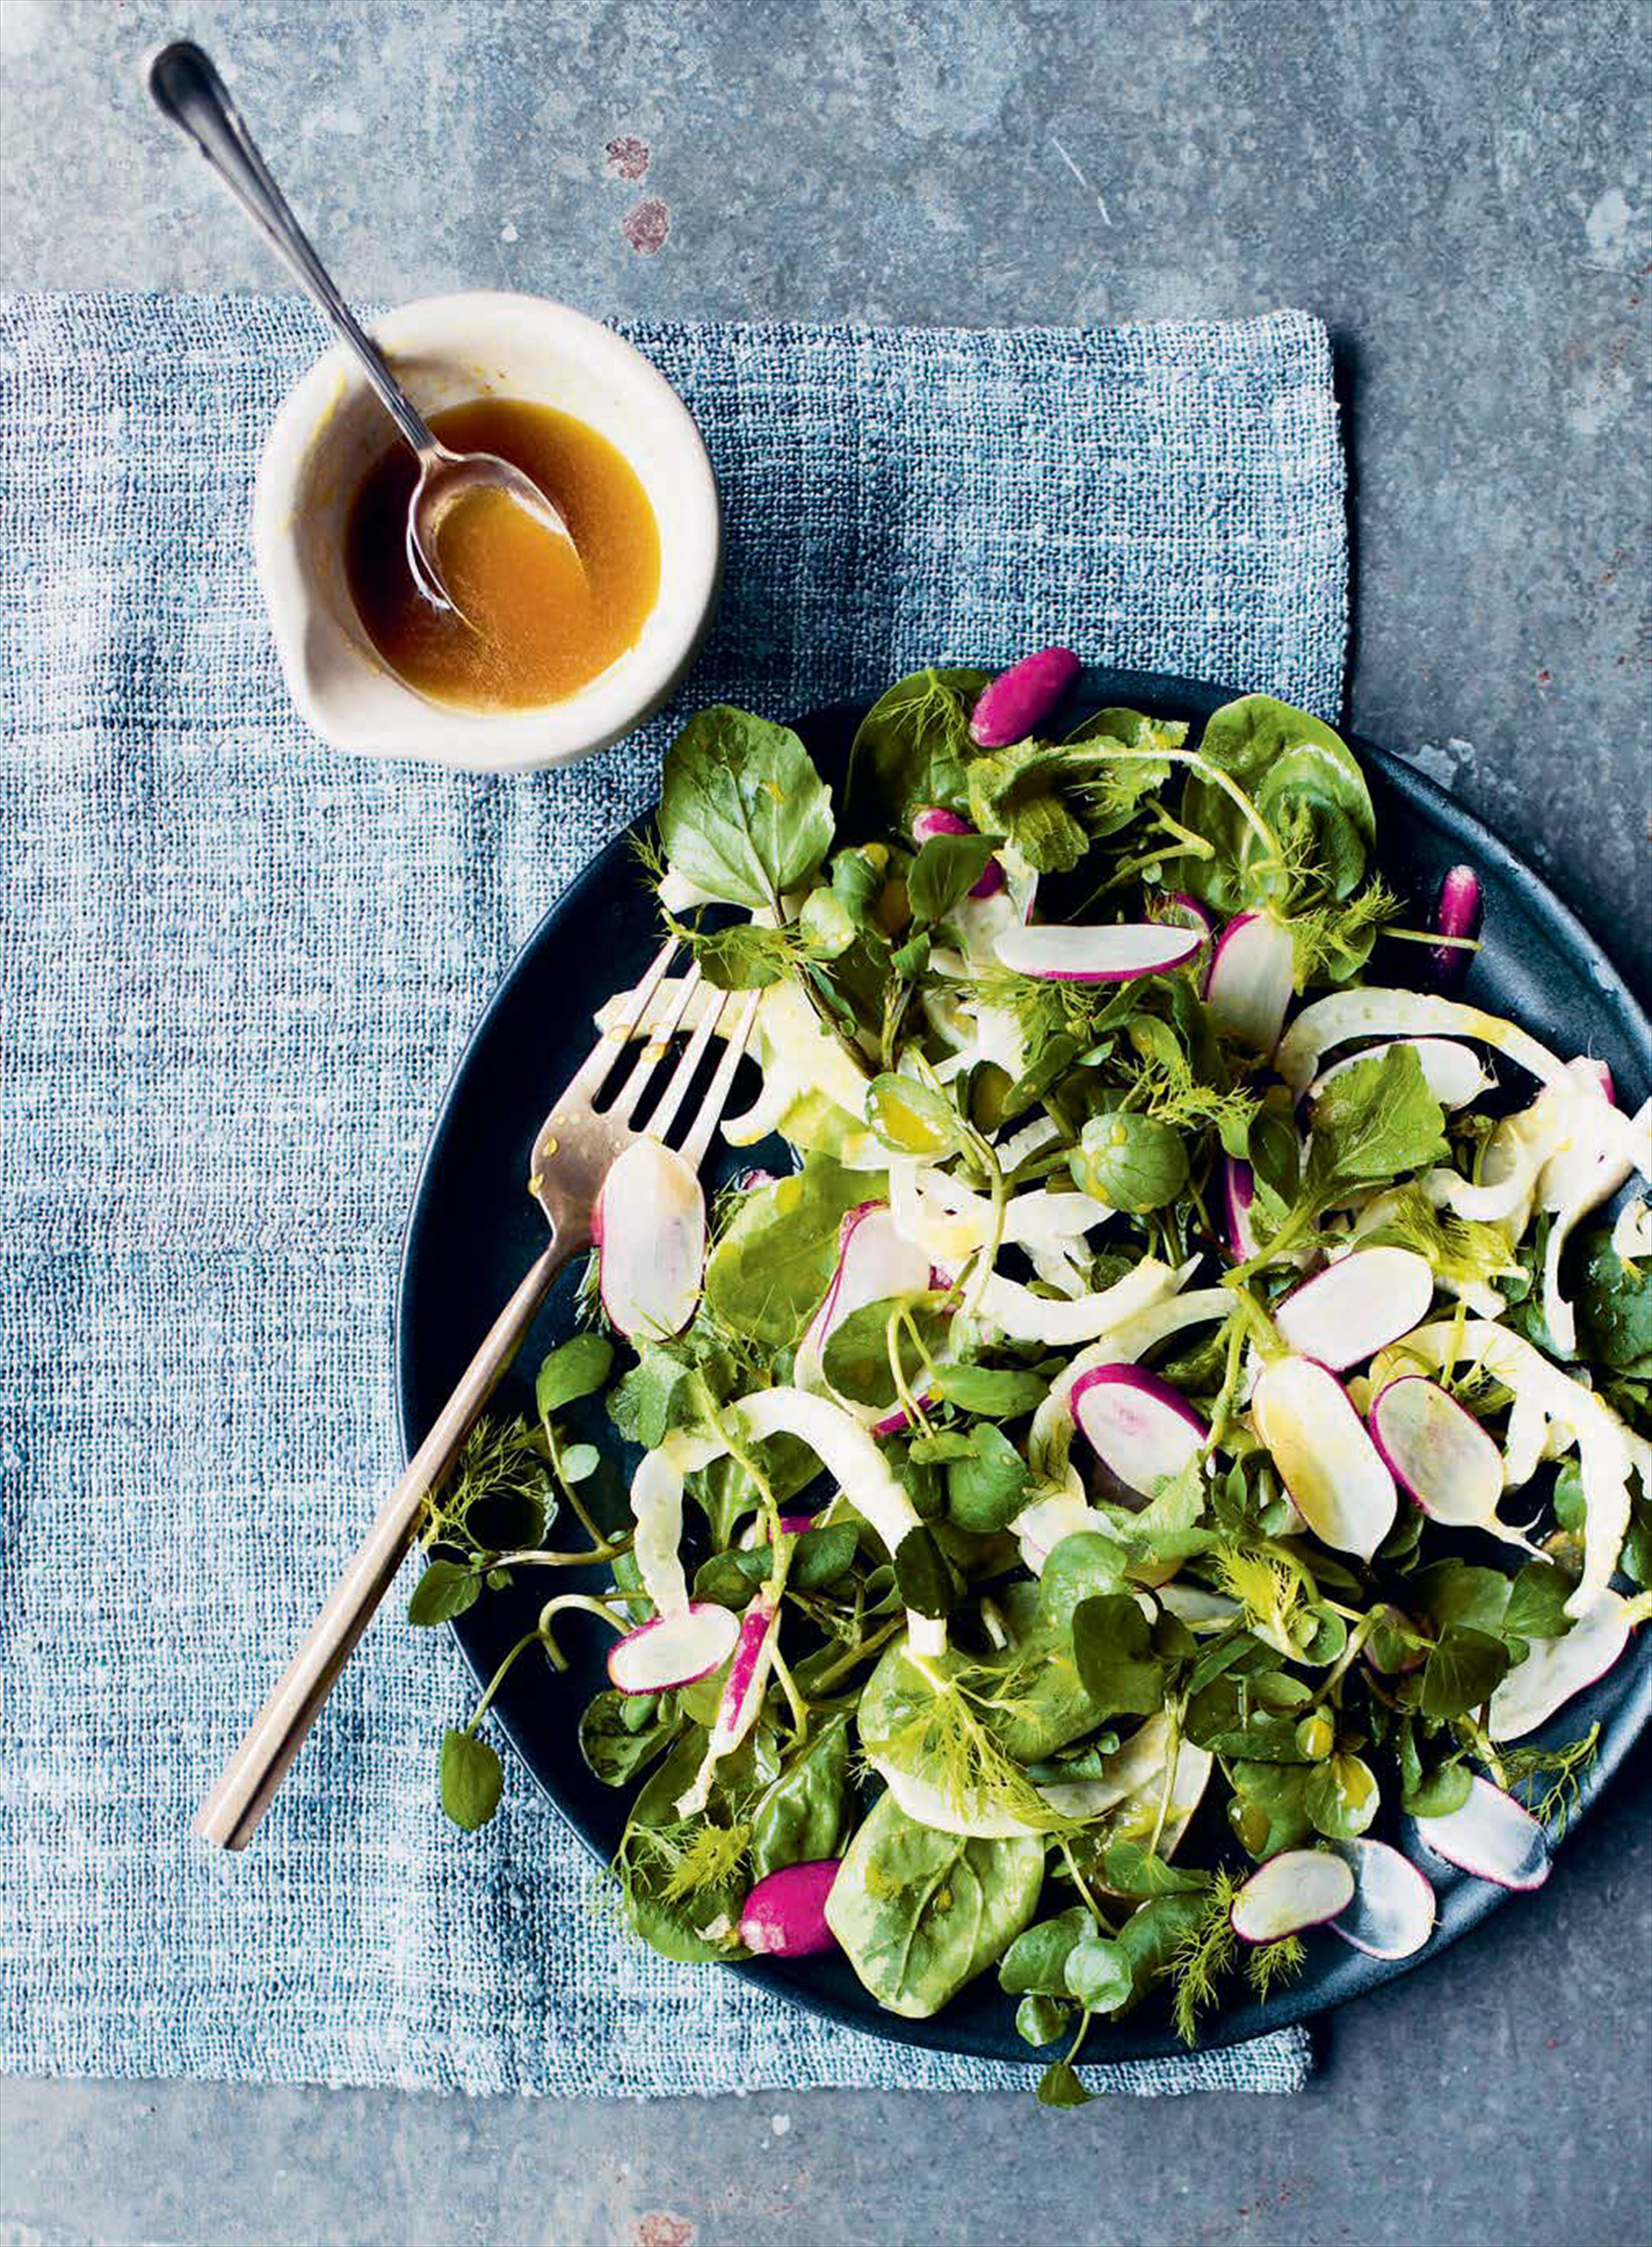 Honey mustard, watercress and radish salad